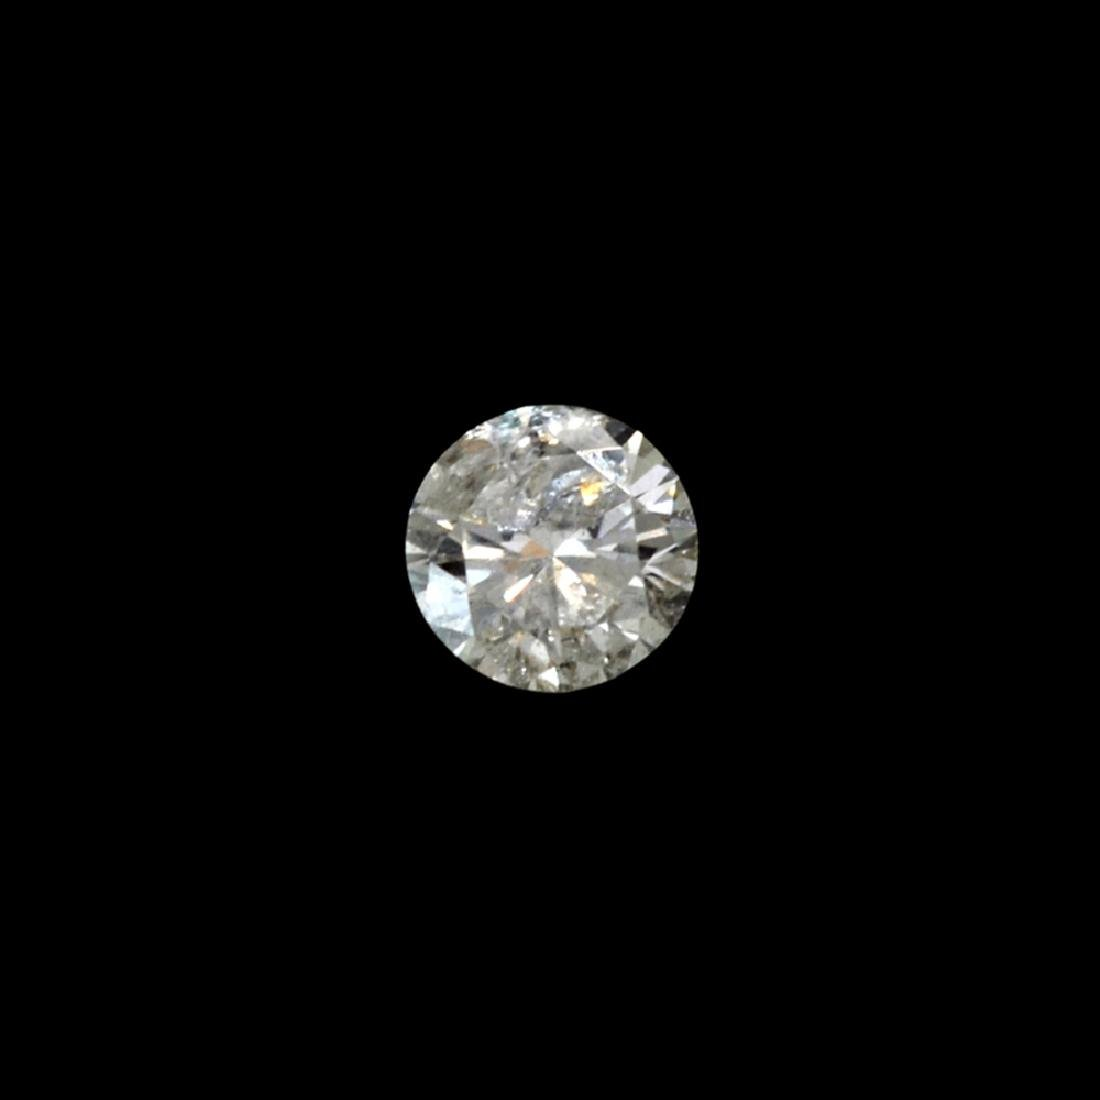 Fine Jewelry GIA Certified 0.19CT Round Brilliant Cut